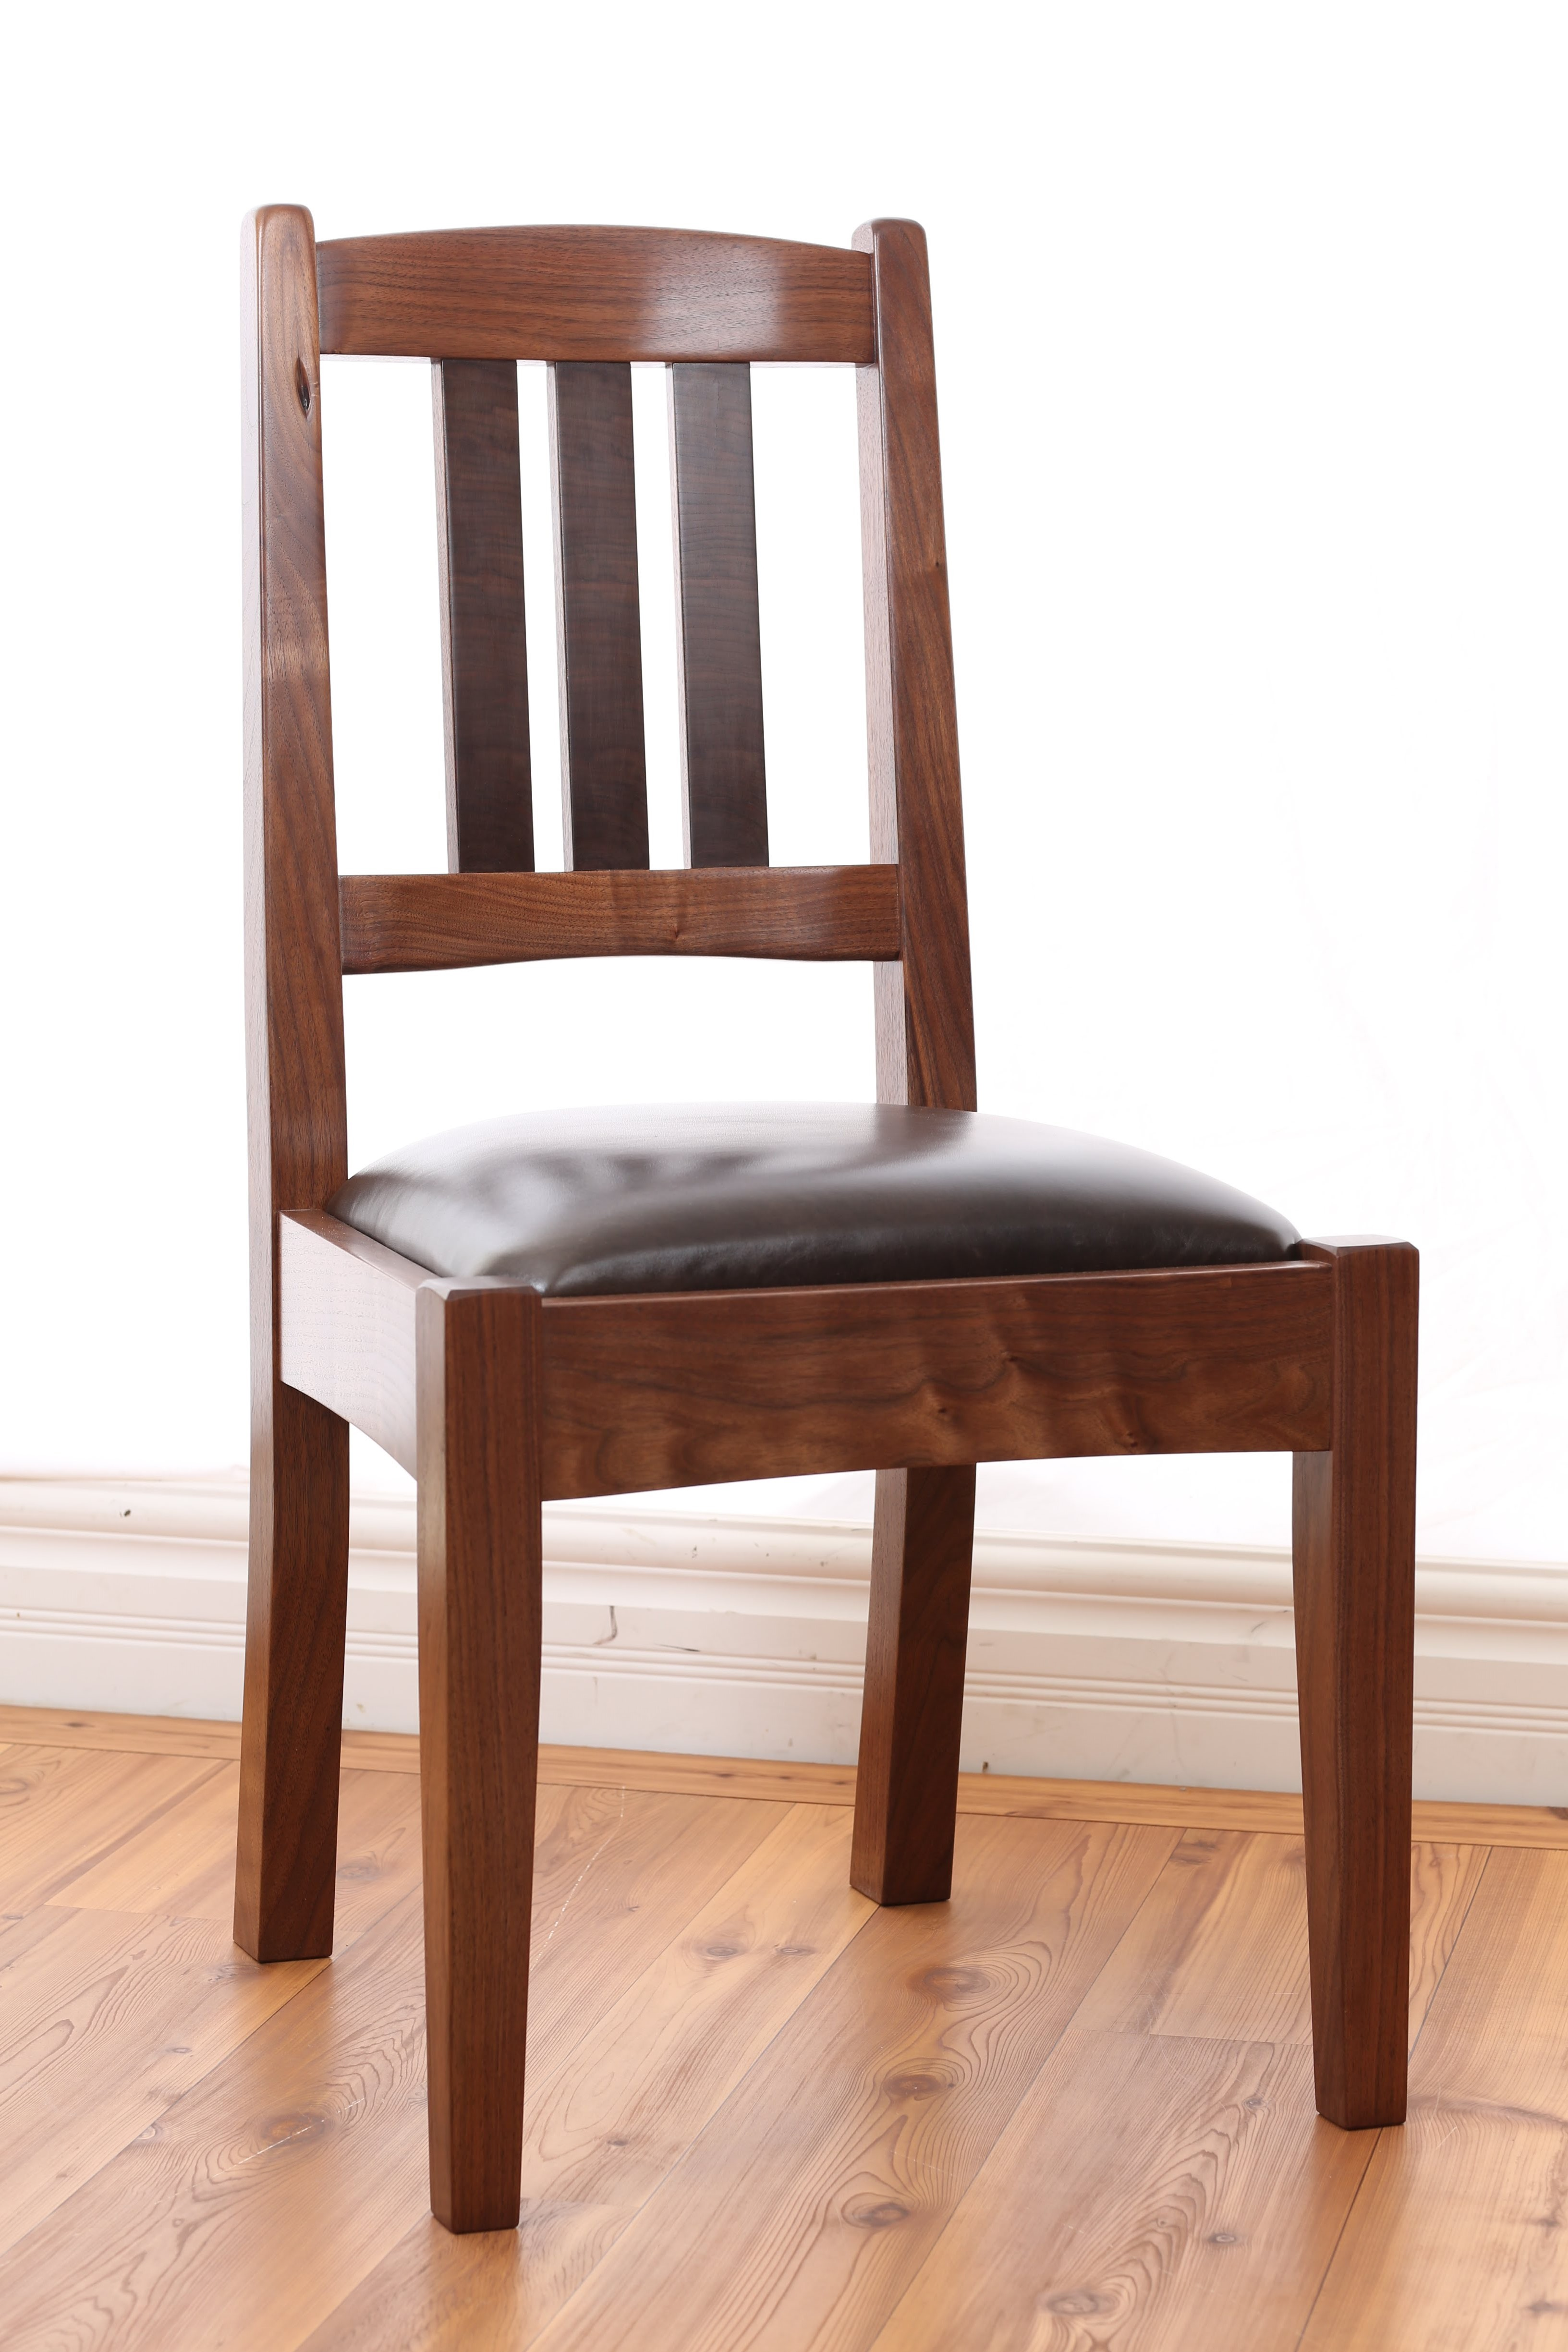 This is the third version of this chair I have made and the one I like best